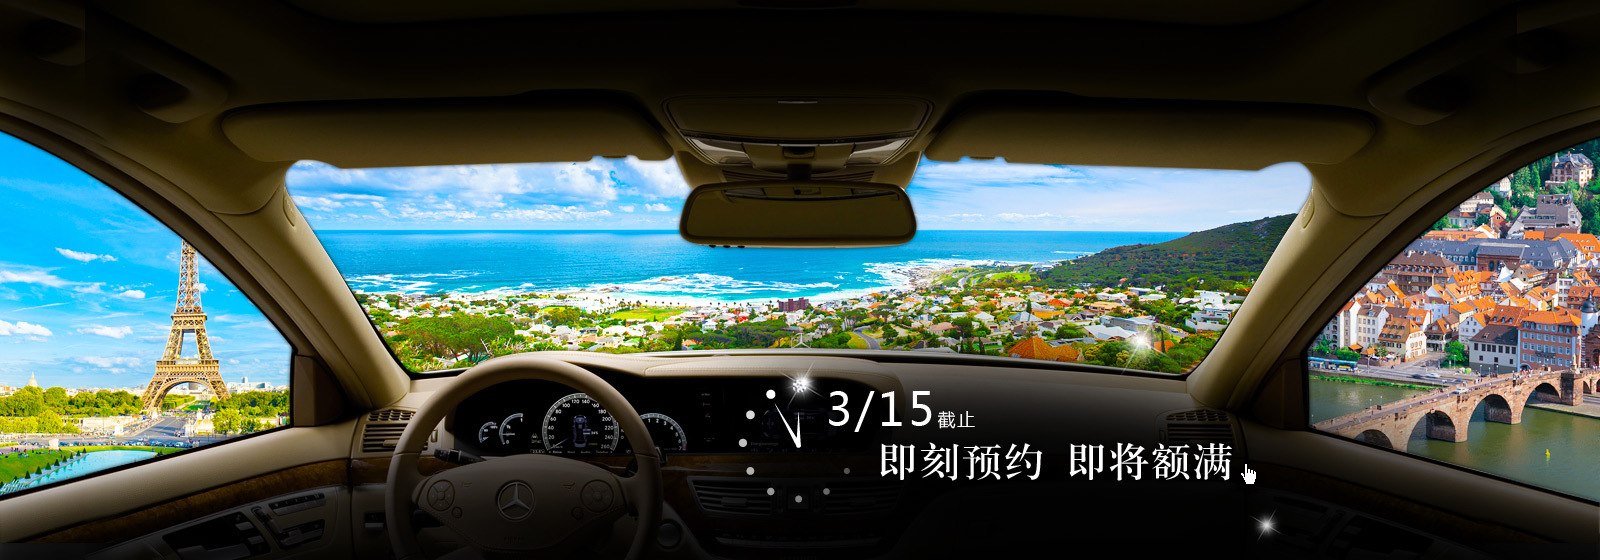 奔驰旅游 Mercedes-BenzTravel